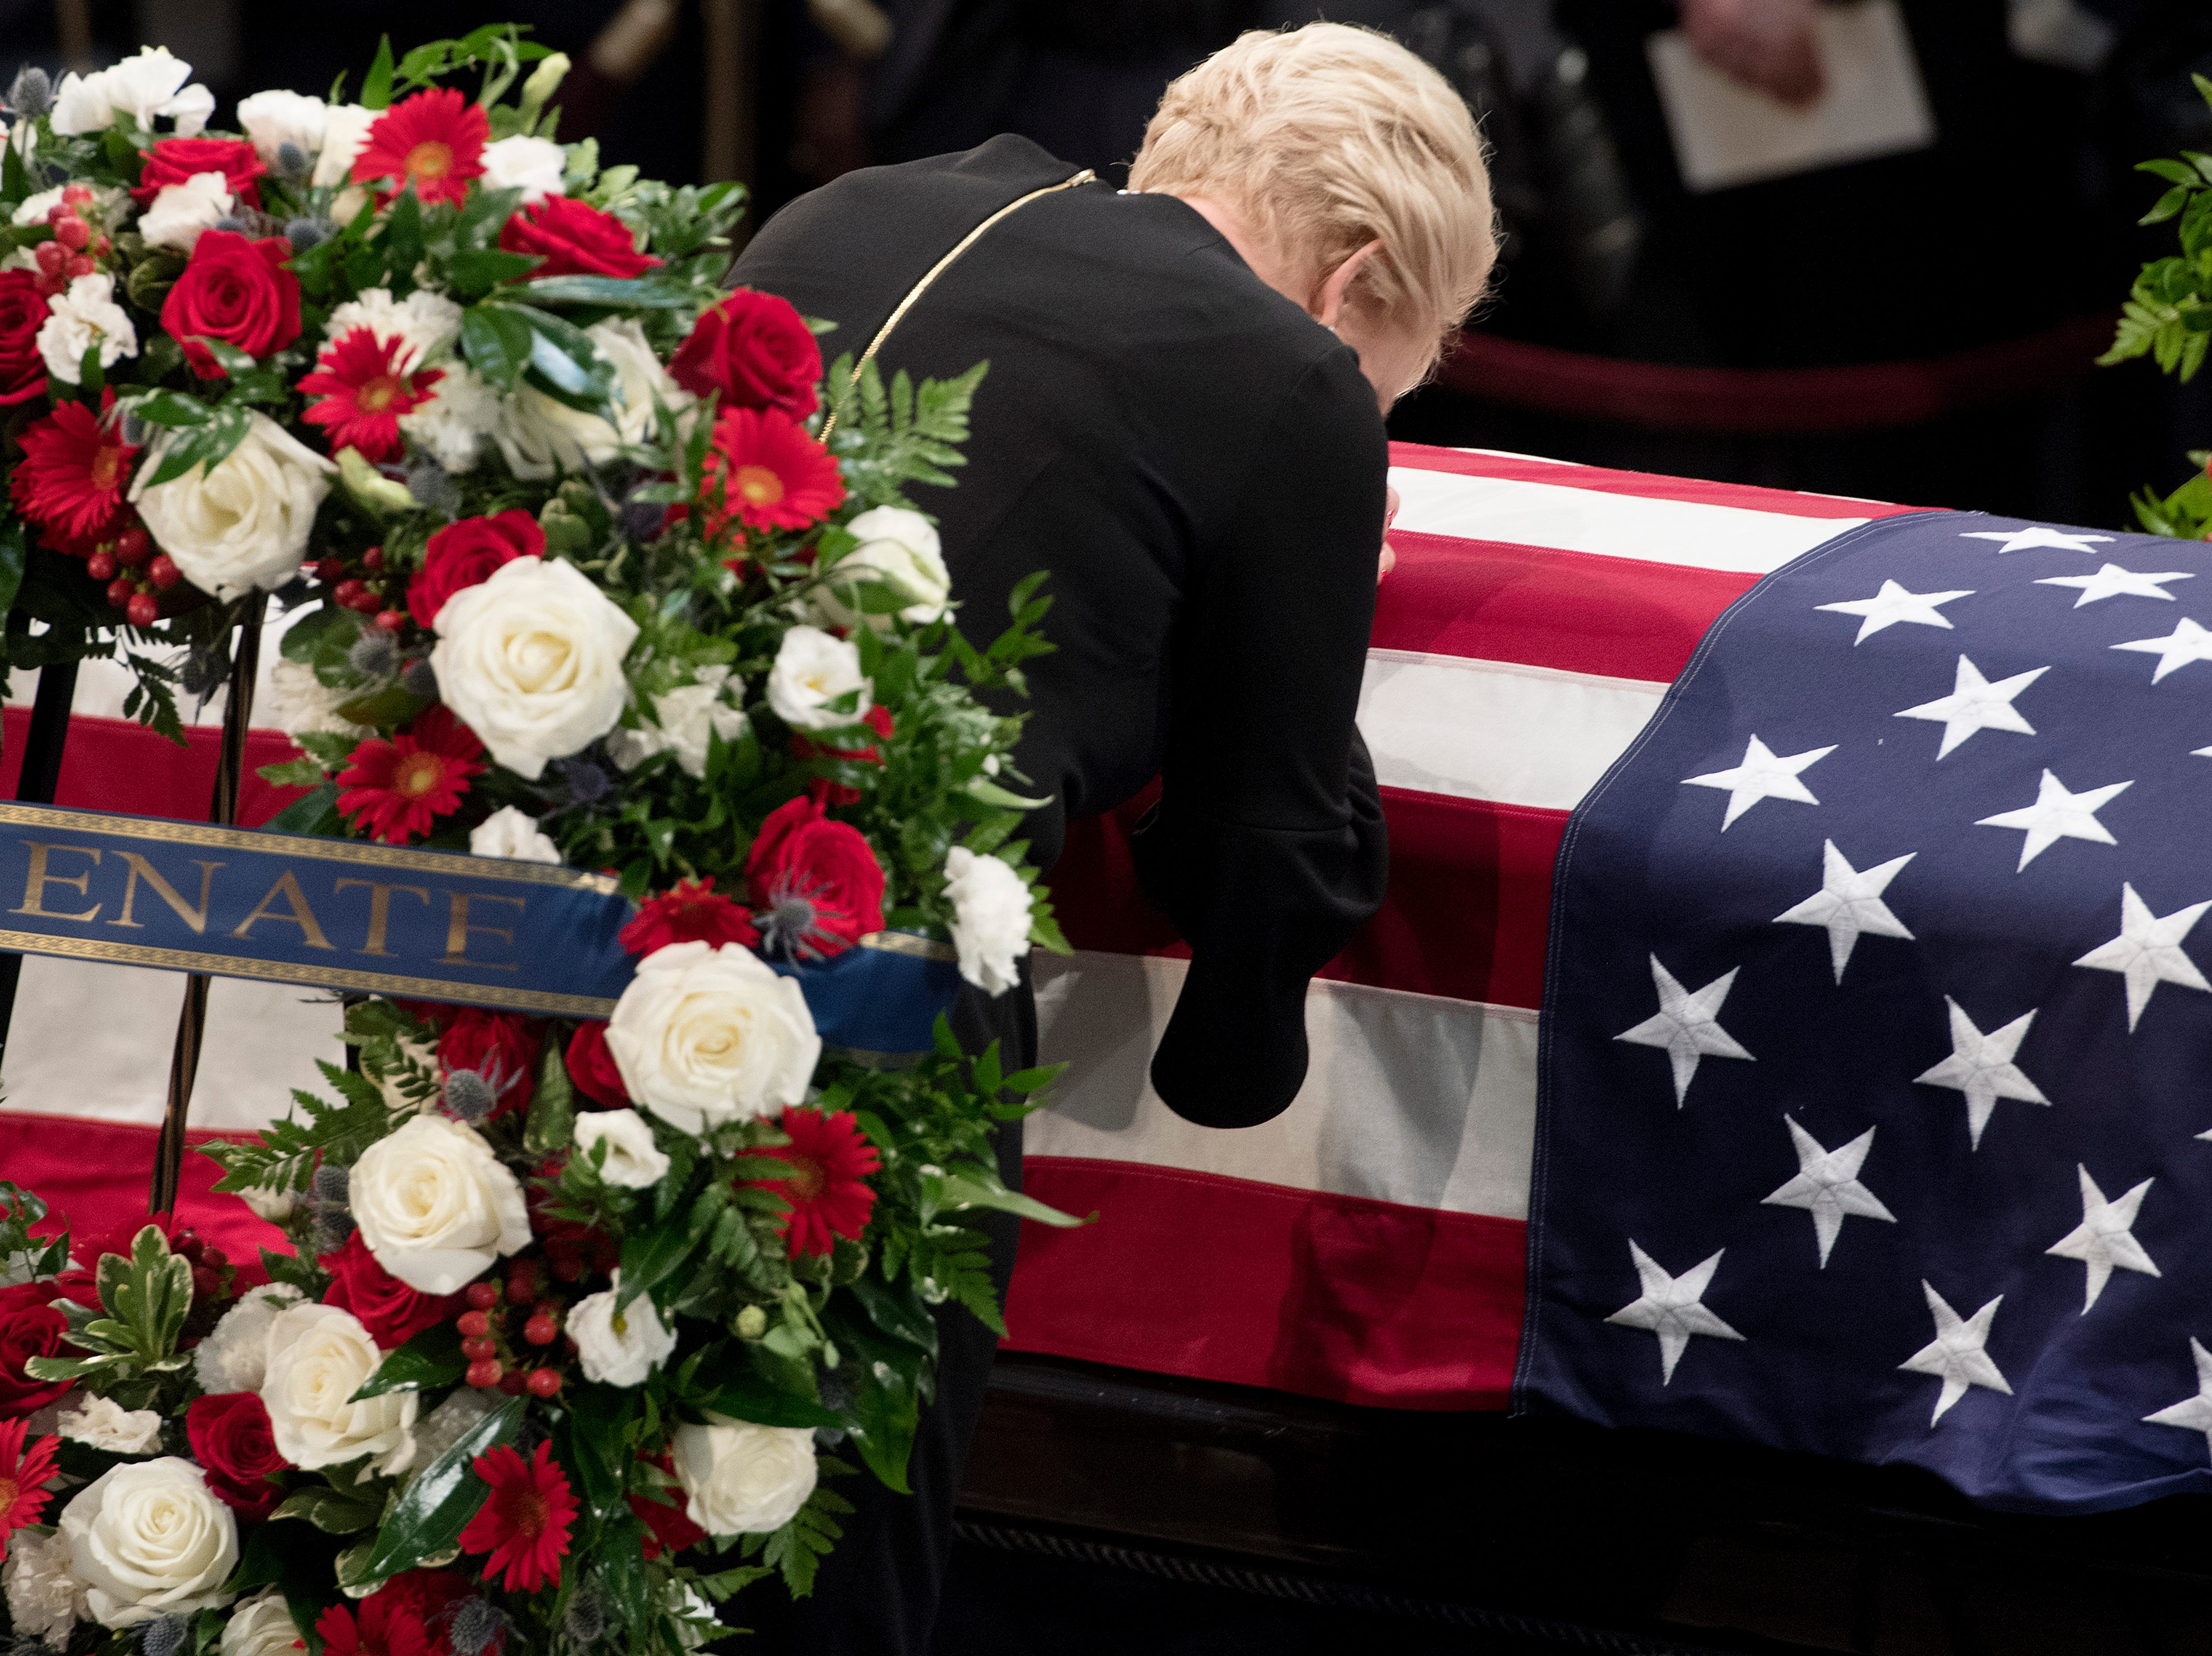 Cindy McCain pays her respects to the flag-draped casket bearing the remains of her husband Sen. John McCain, R-Ariz., in the U.S. Capitol, Friday, Aug. 31, 2018 in Washington. (Jim Watson/Pool photo via AP)